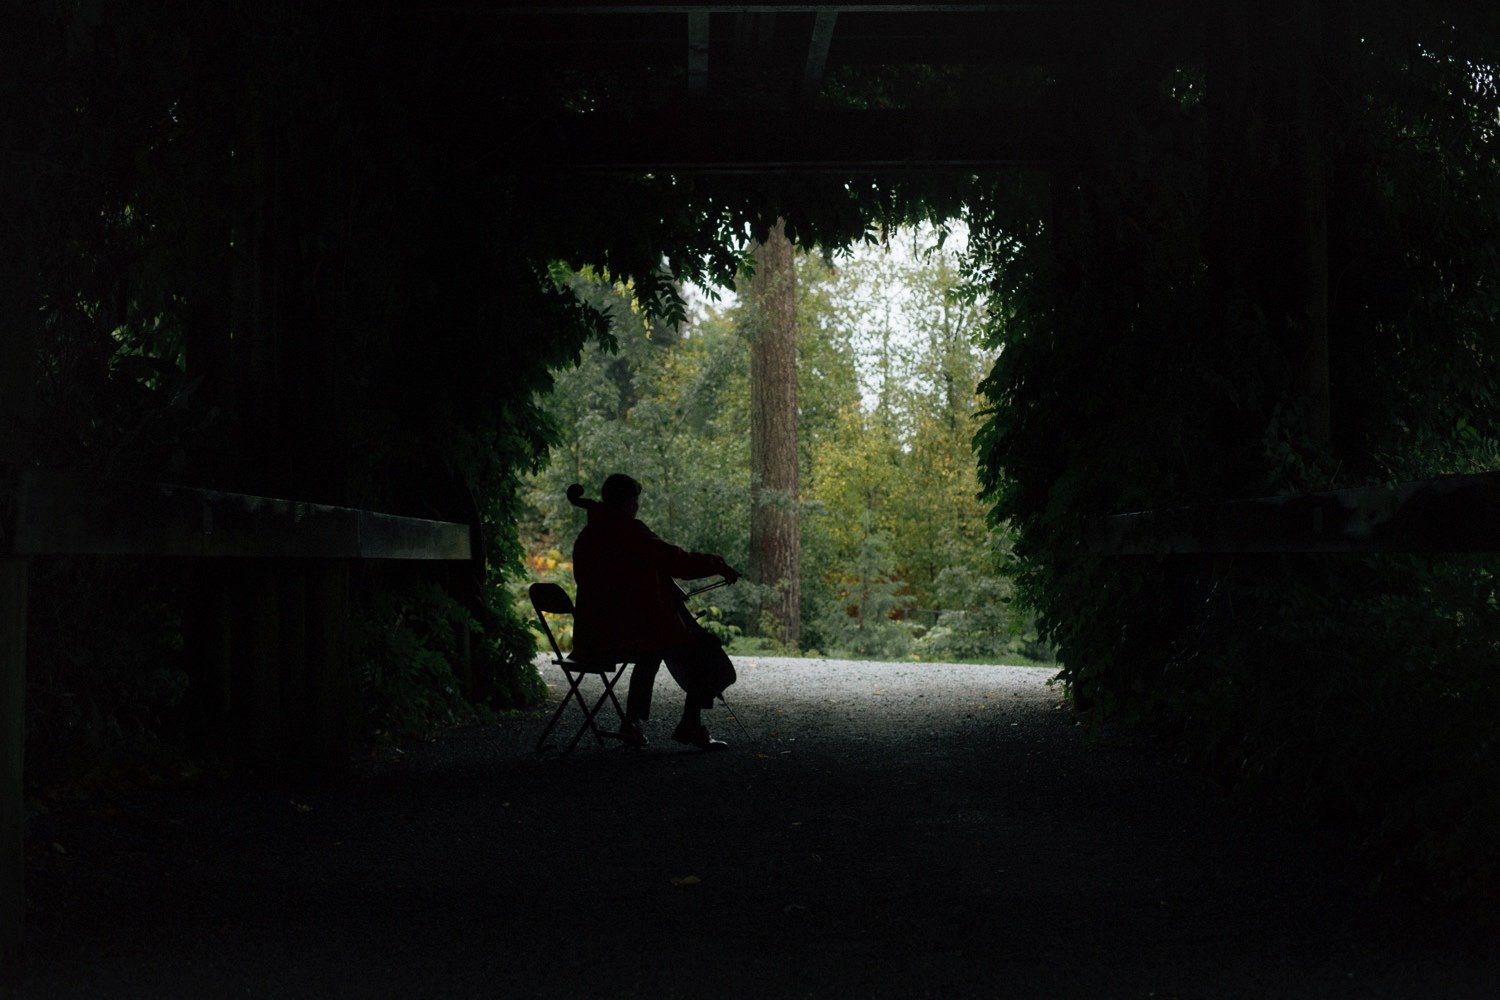 silhouette of cello player at ubc botanical garden